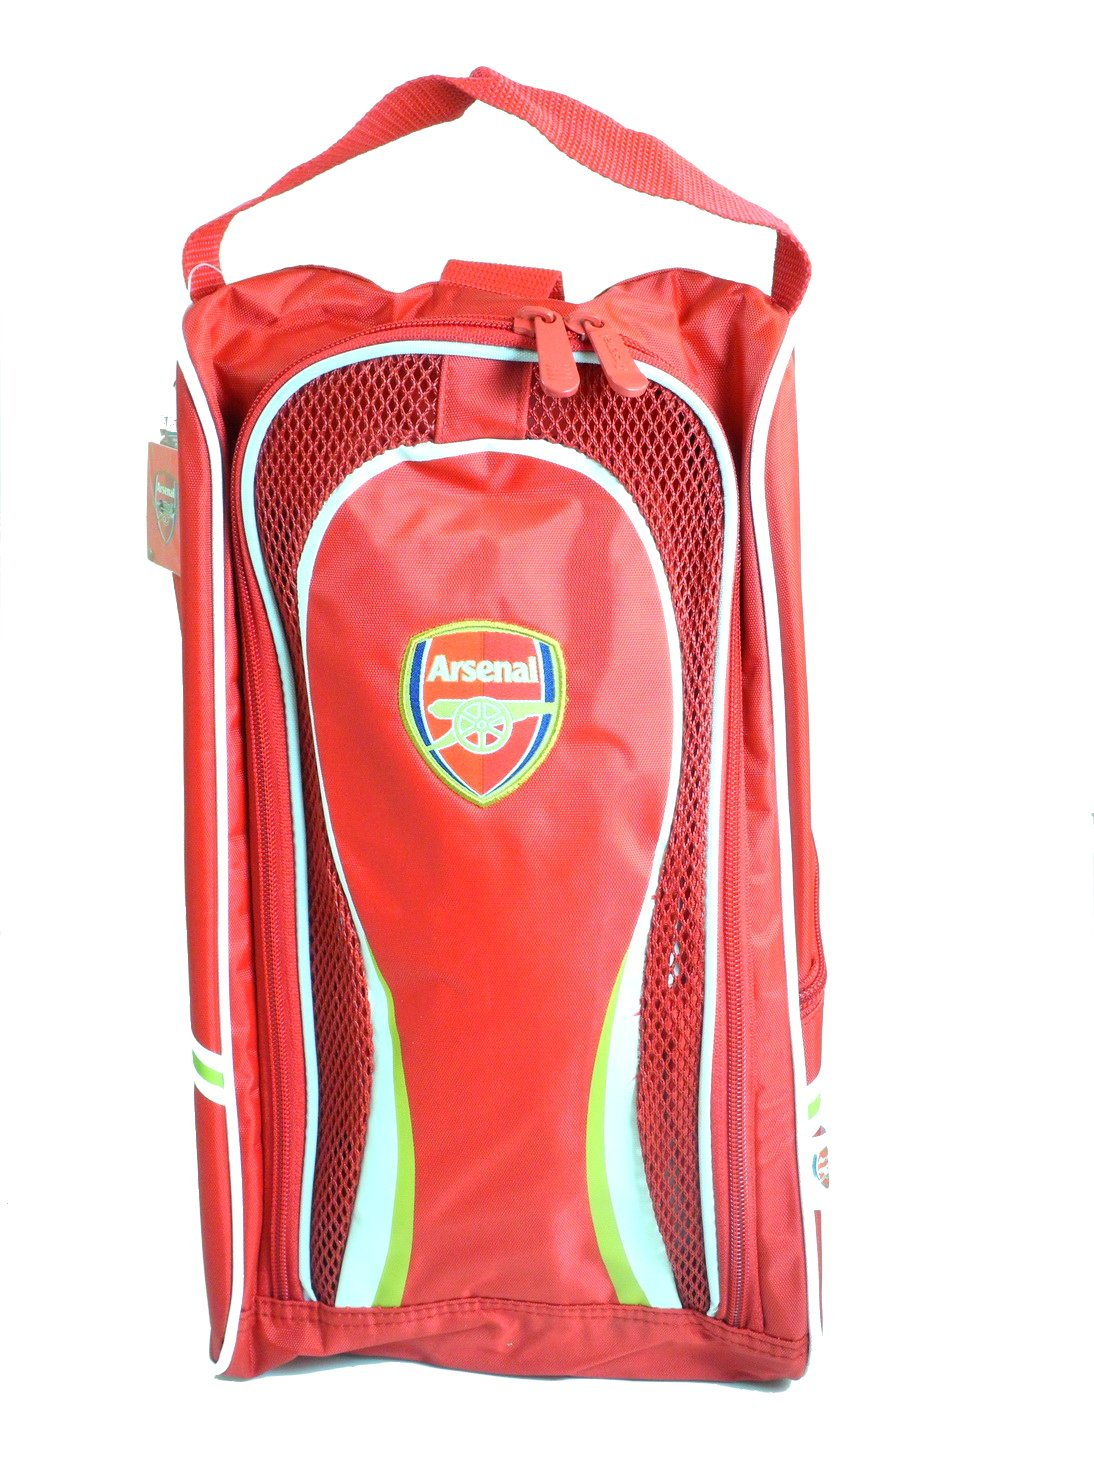 Arsenal F.C. Authentic Official Licensed Soccer Shoe Bag